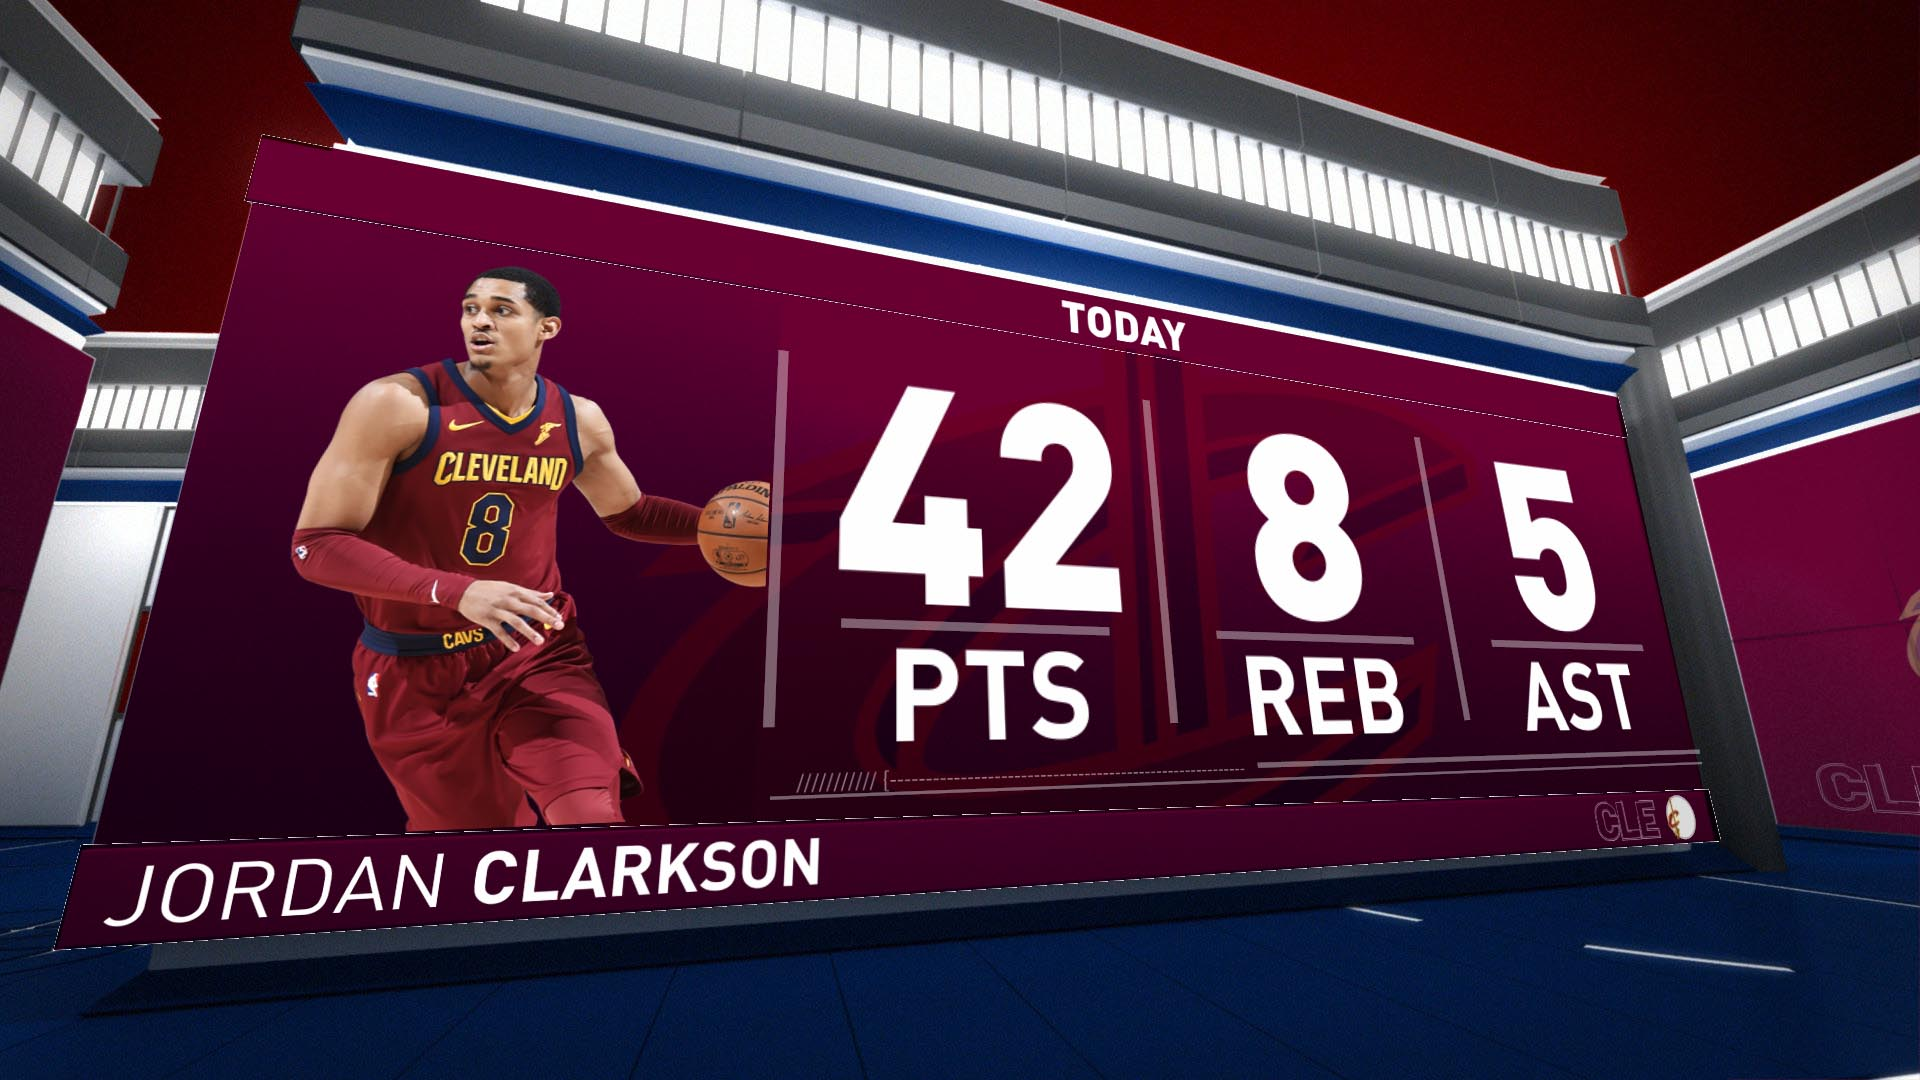 Highlights: Jordan Clarkson - Nets Vs. Cavaliers